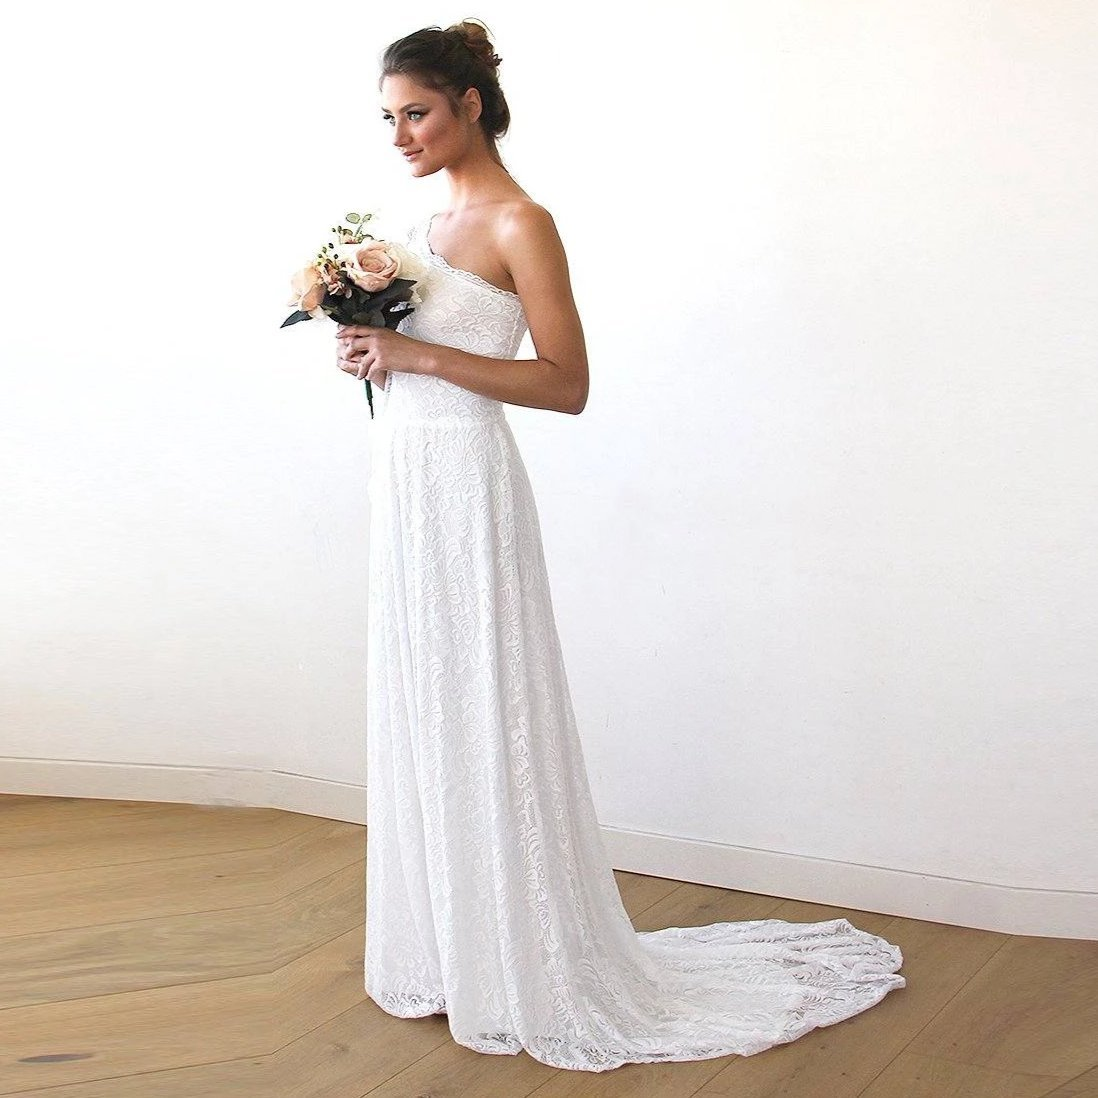 One Shoulder Floral Lace Gown With Long Train 1166 – Blushfashion